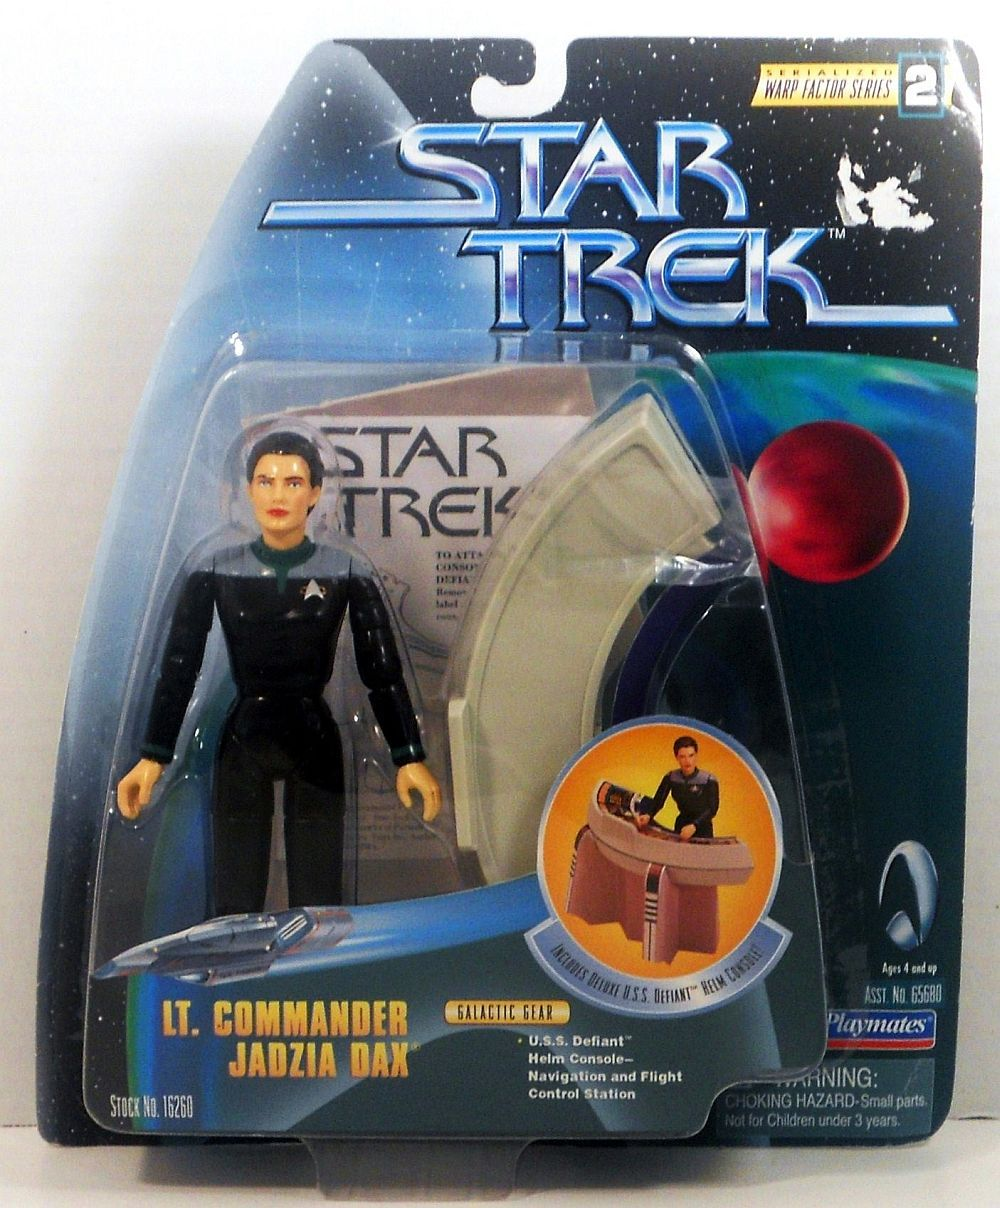 Star Trek DS9 Lieutenant Jadzia Dax Warp Factor Series 2